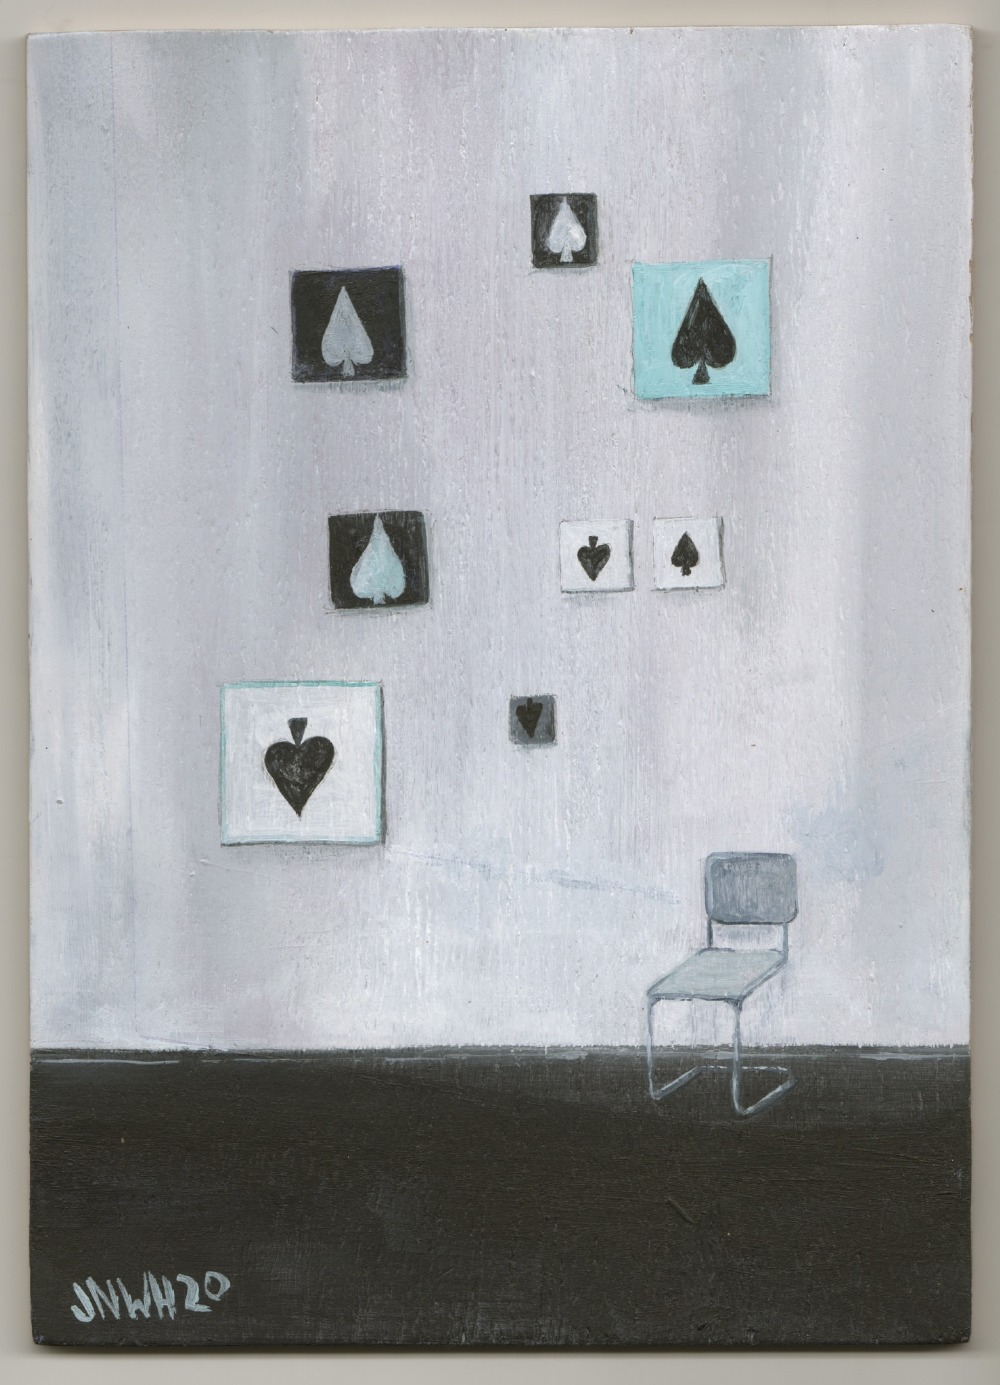 John Hainsworth (British). '8 of Spades', oil on board, signed and dated front and back. 21 x